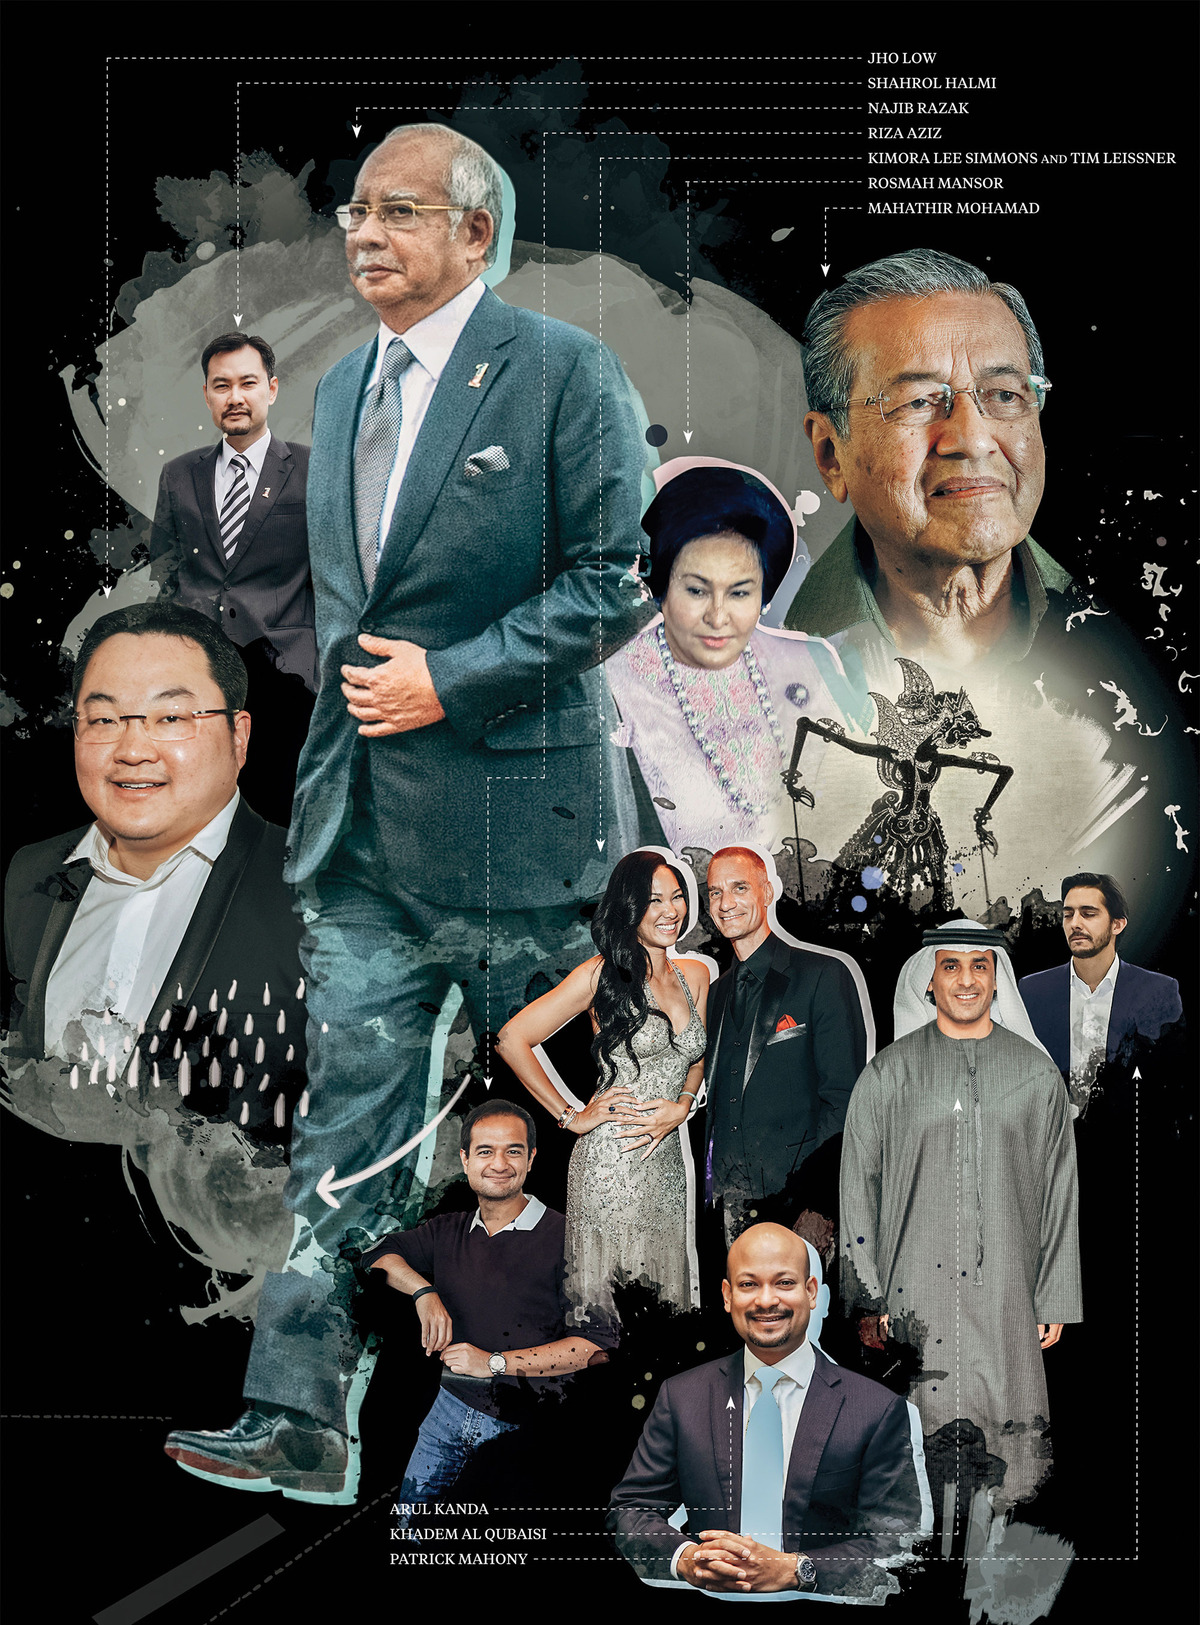 Bloomberg's photo summary of all the people that are allegedly involved in the 1MDB scandal